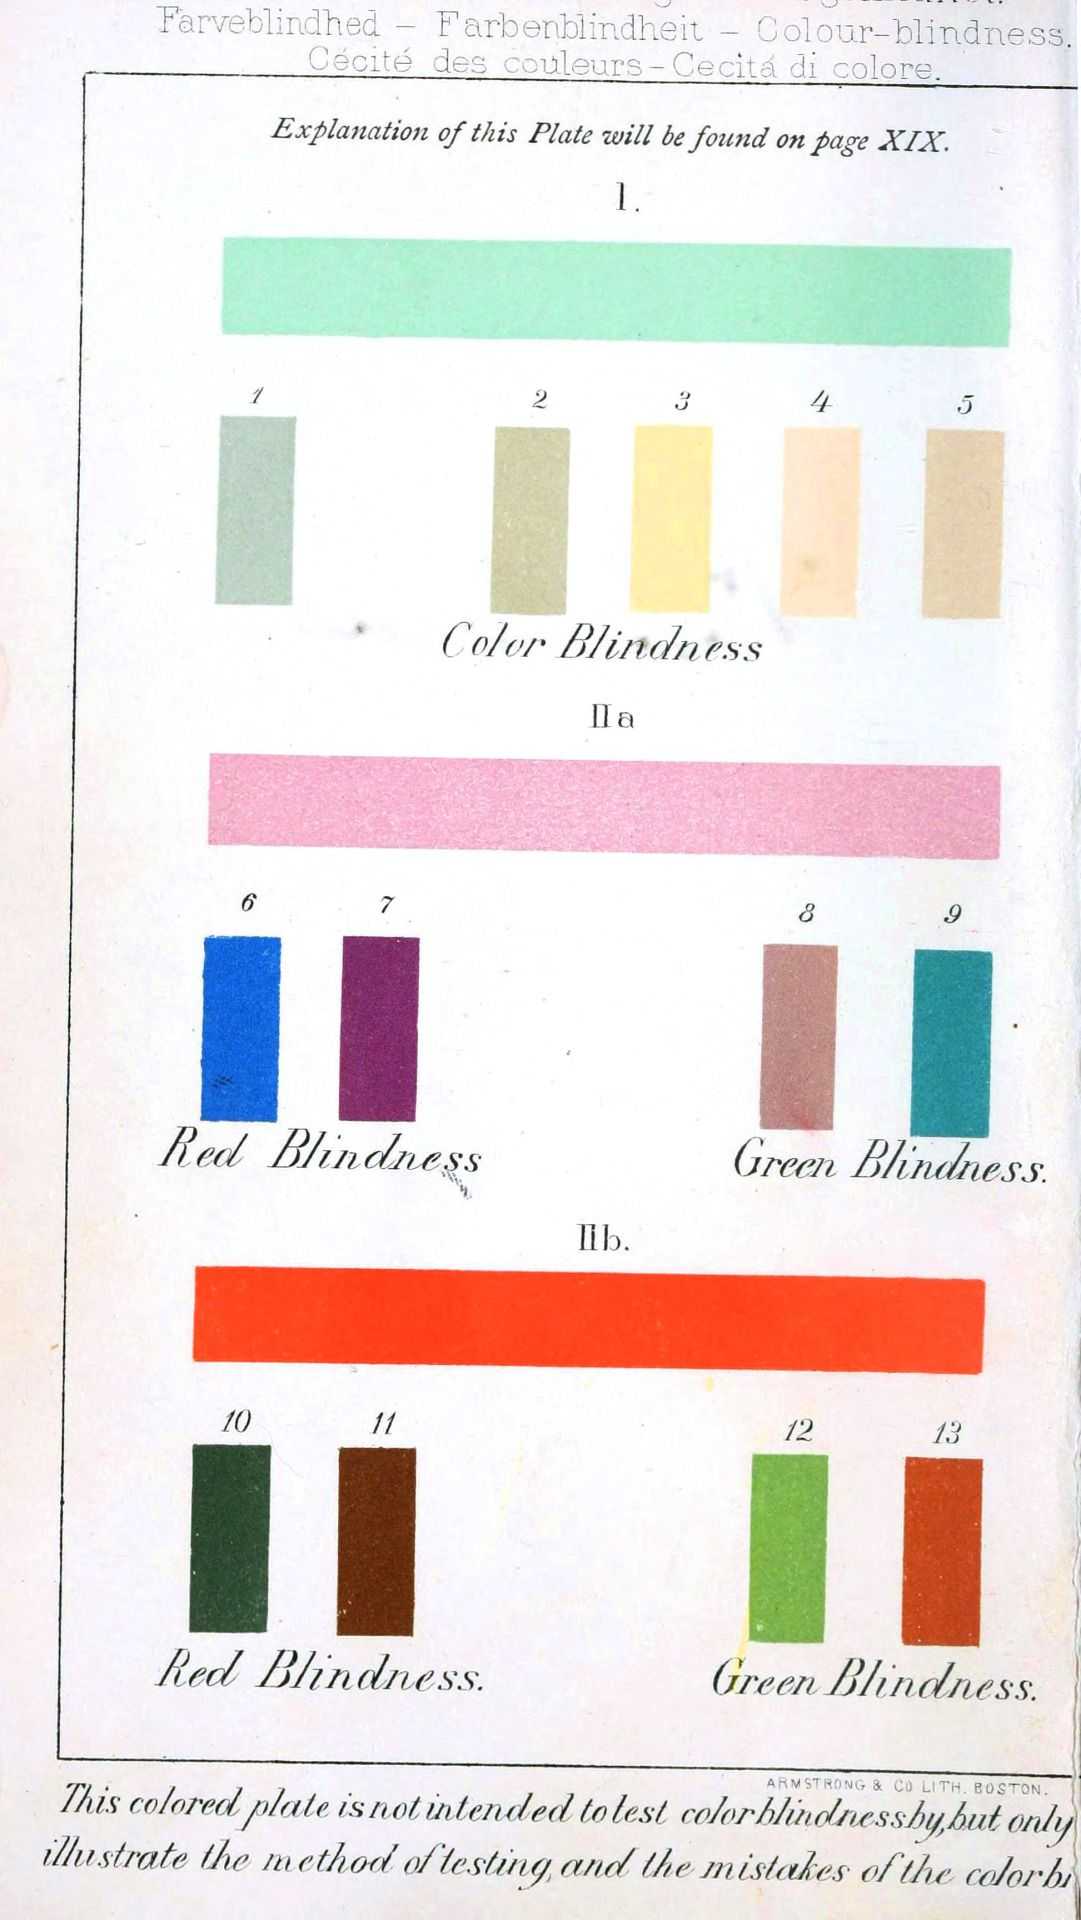 liverodland:  Tune in to that vivid painting: A turn of the century color blindness test.